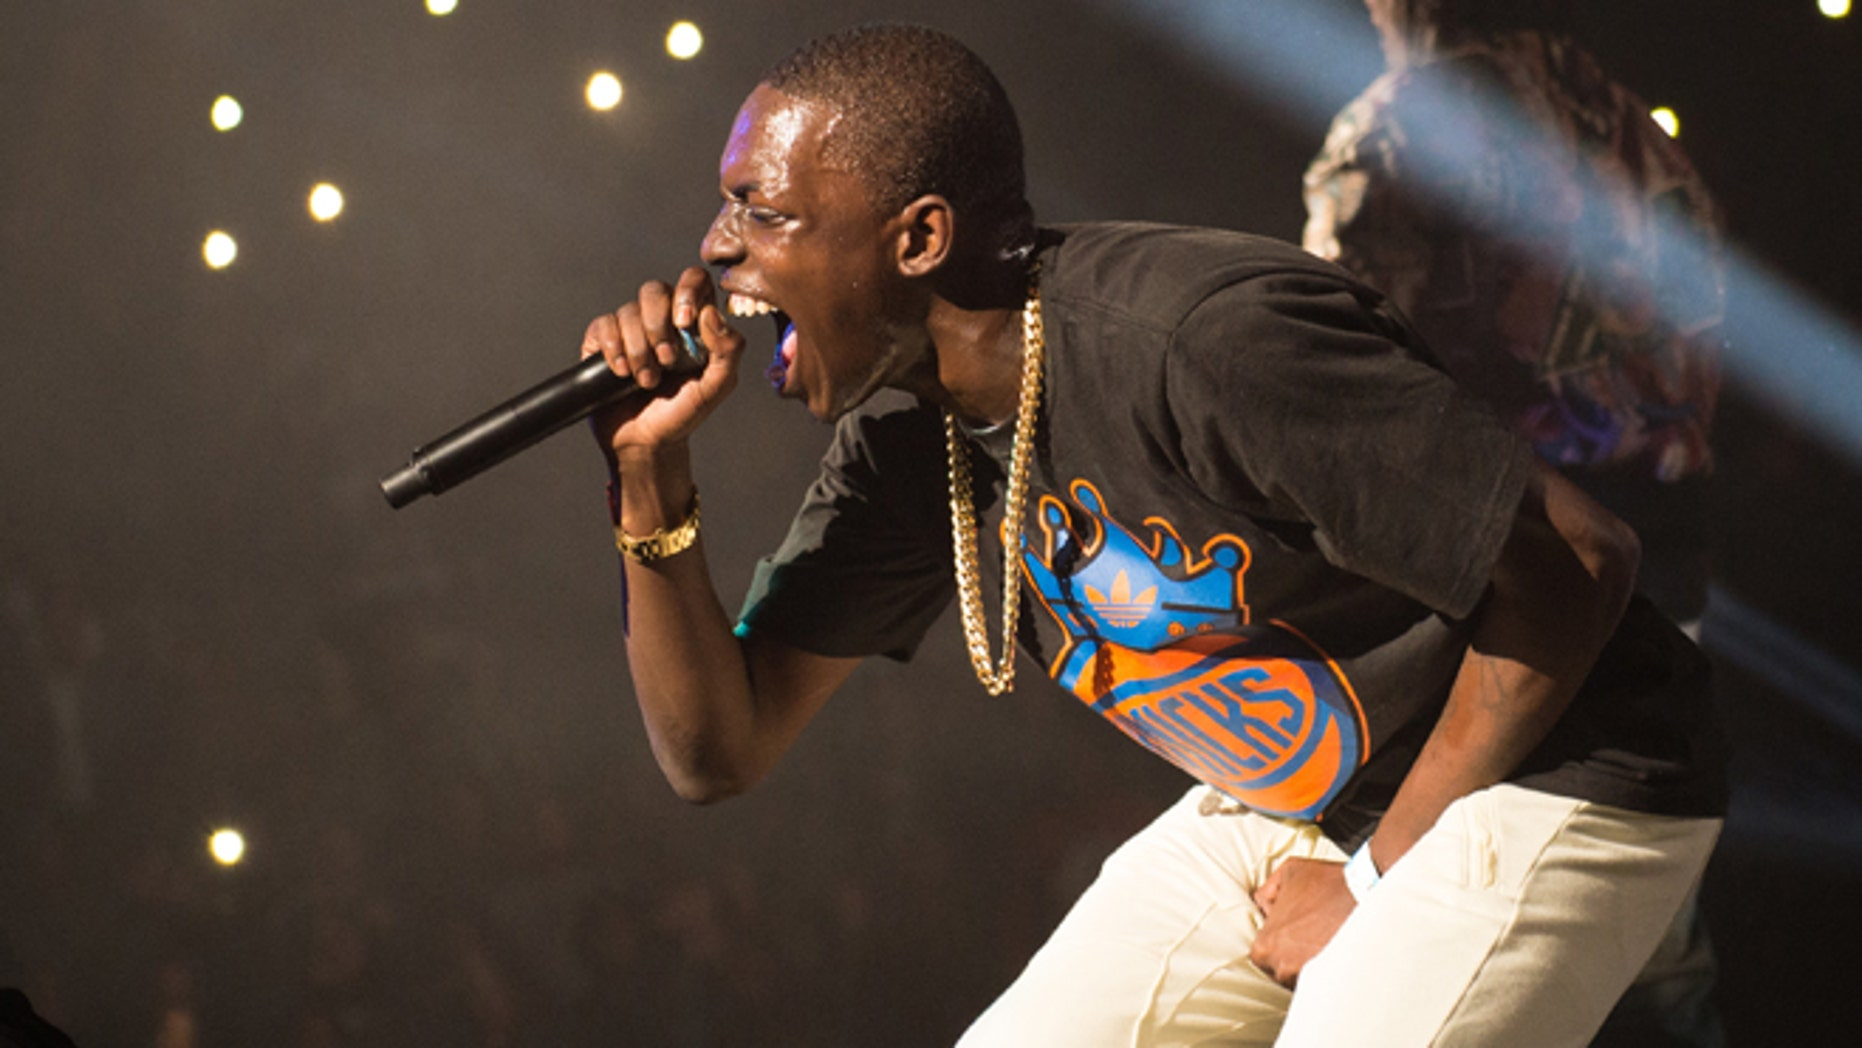 Rapper Bobby Shmurda has pleaded guilty to conspiracy and illegal weapon possession.